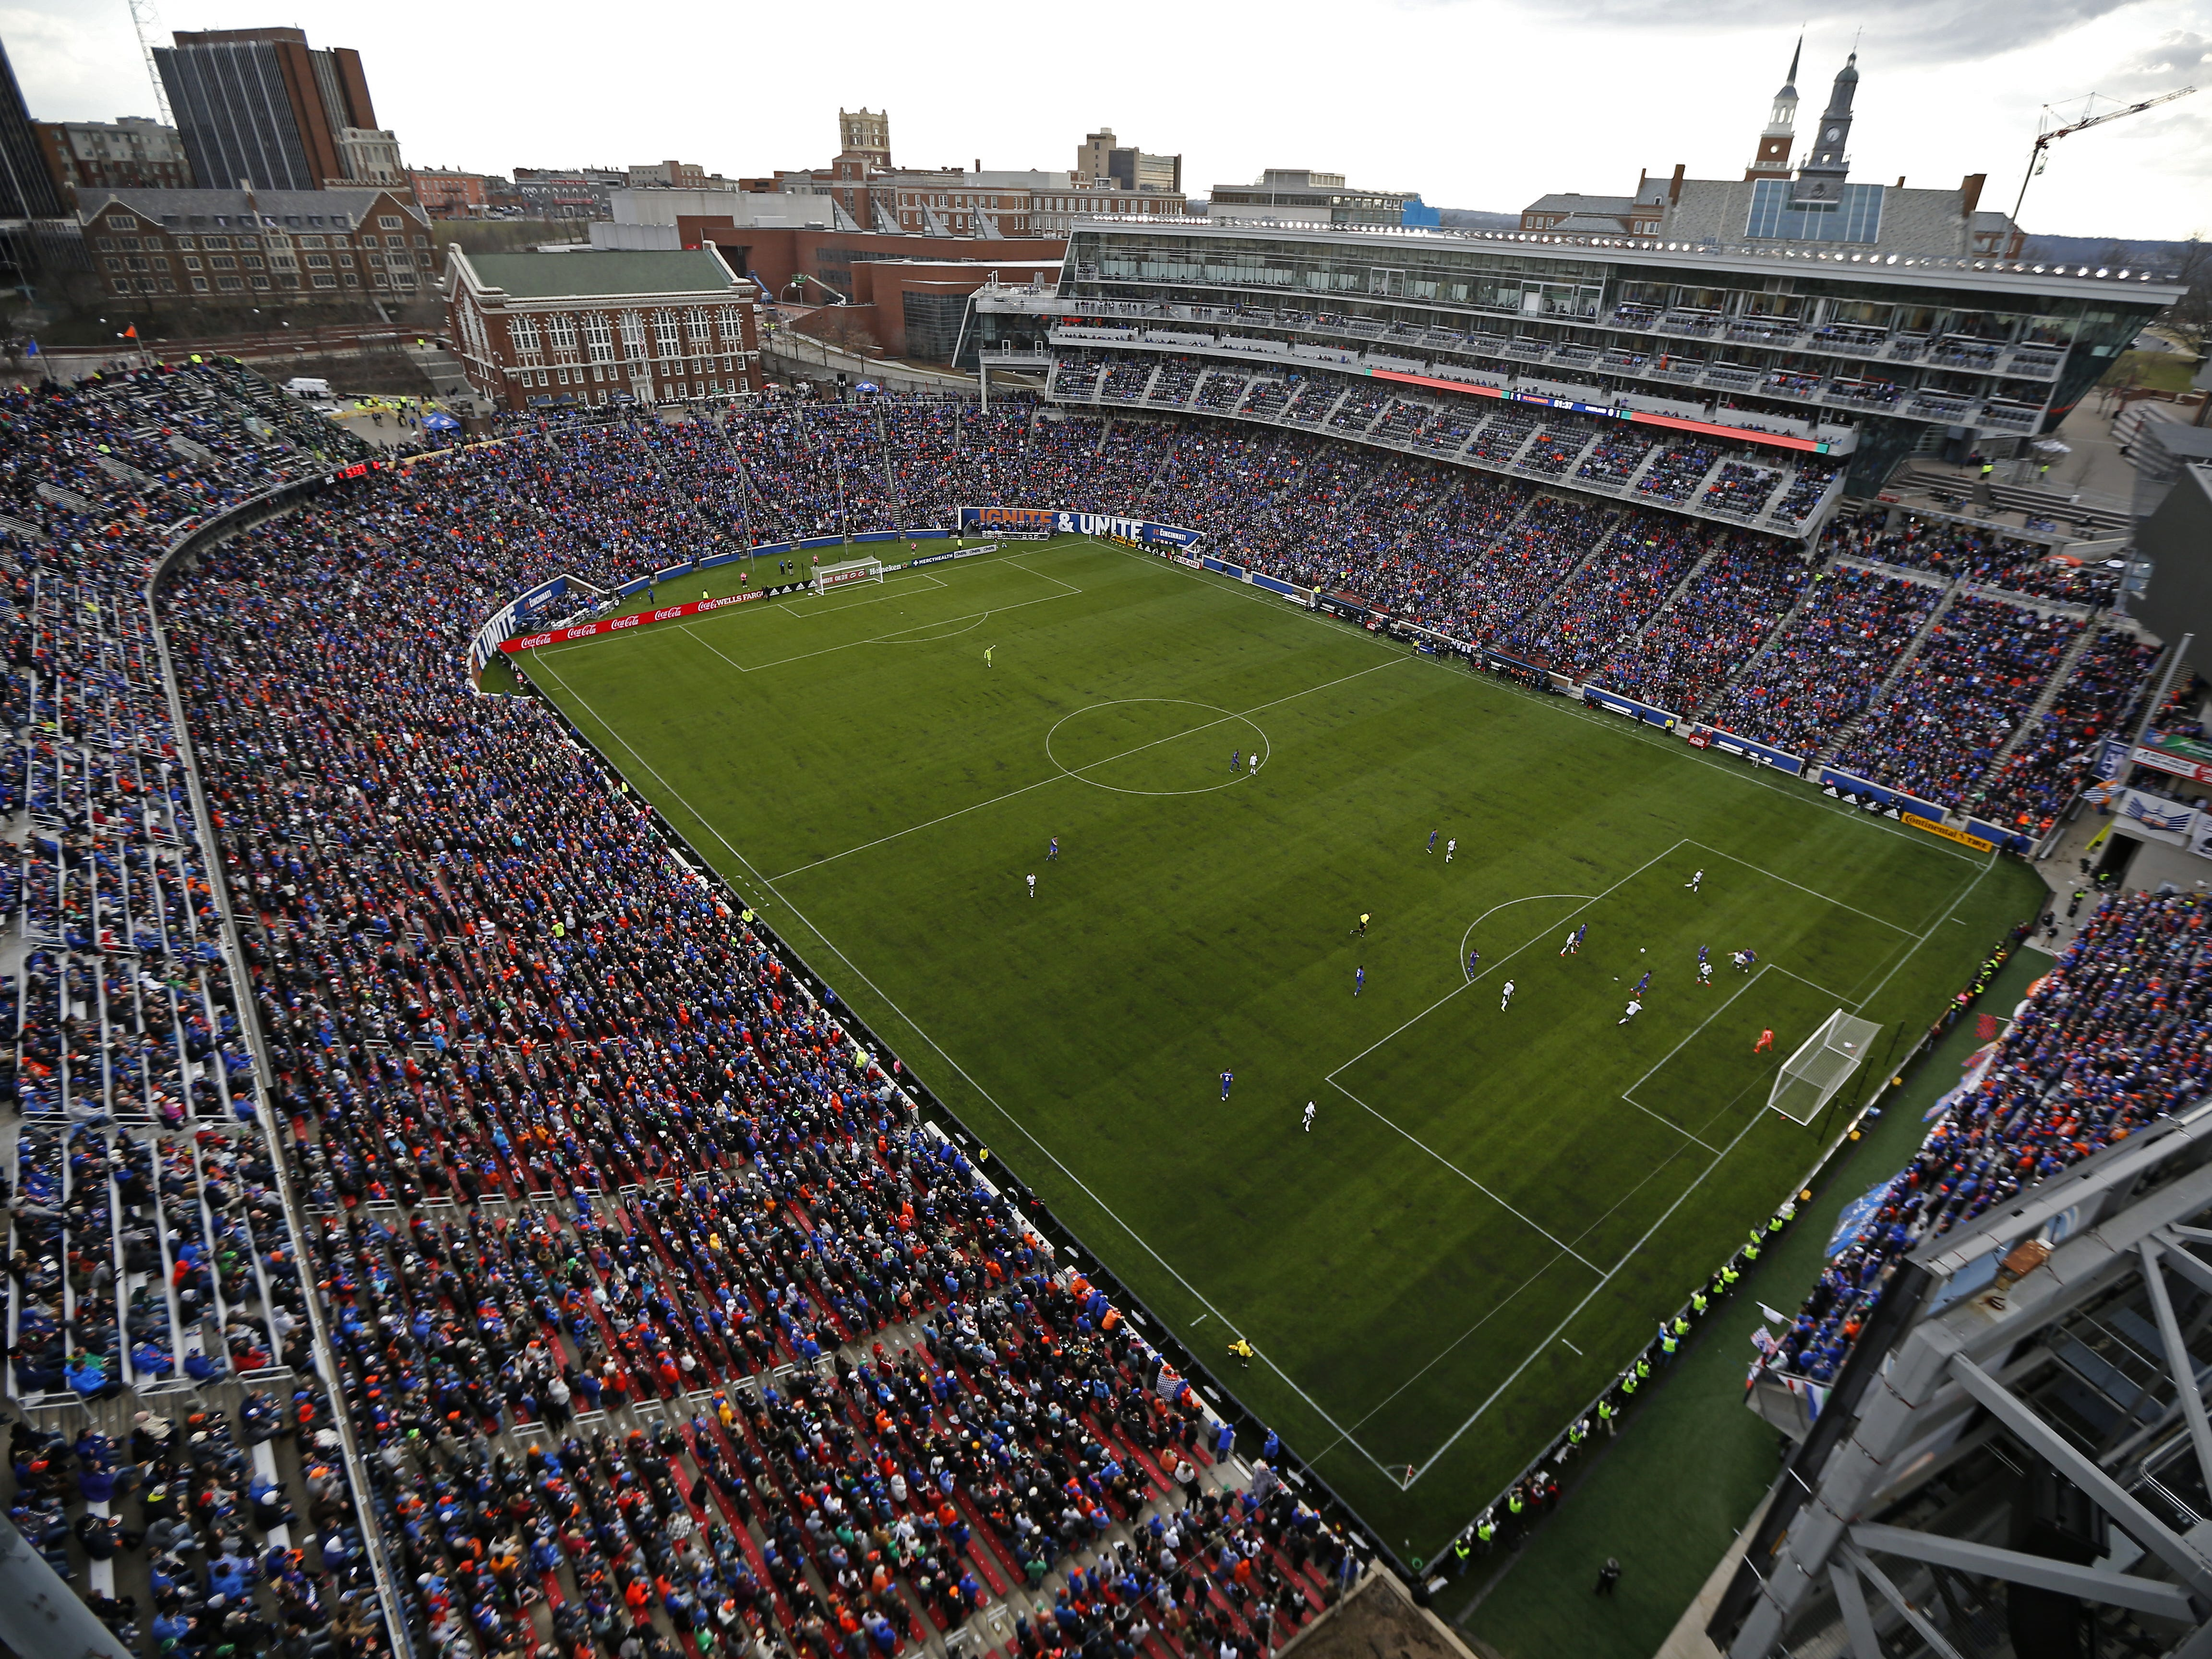 FC Cincinnati takes the ball downfield before a sellout crowd in the second half of the MLS match between FC Cincinnati and the Portland Timbers at Nippert Stadium in Cincinnati on Sunday, March 17, 2019. FC Cincinnati won its first home game as an MLS team, 3-0.